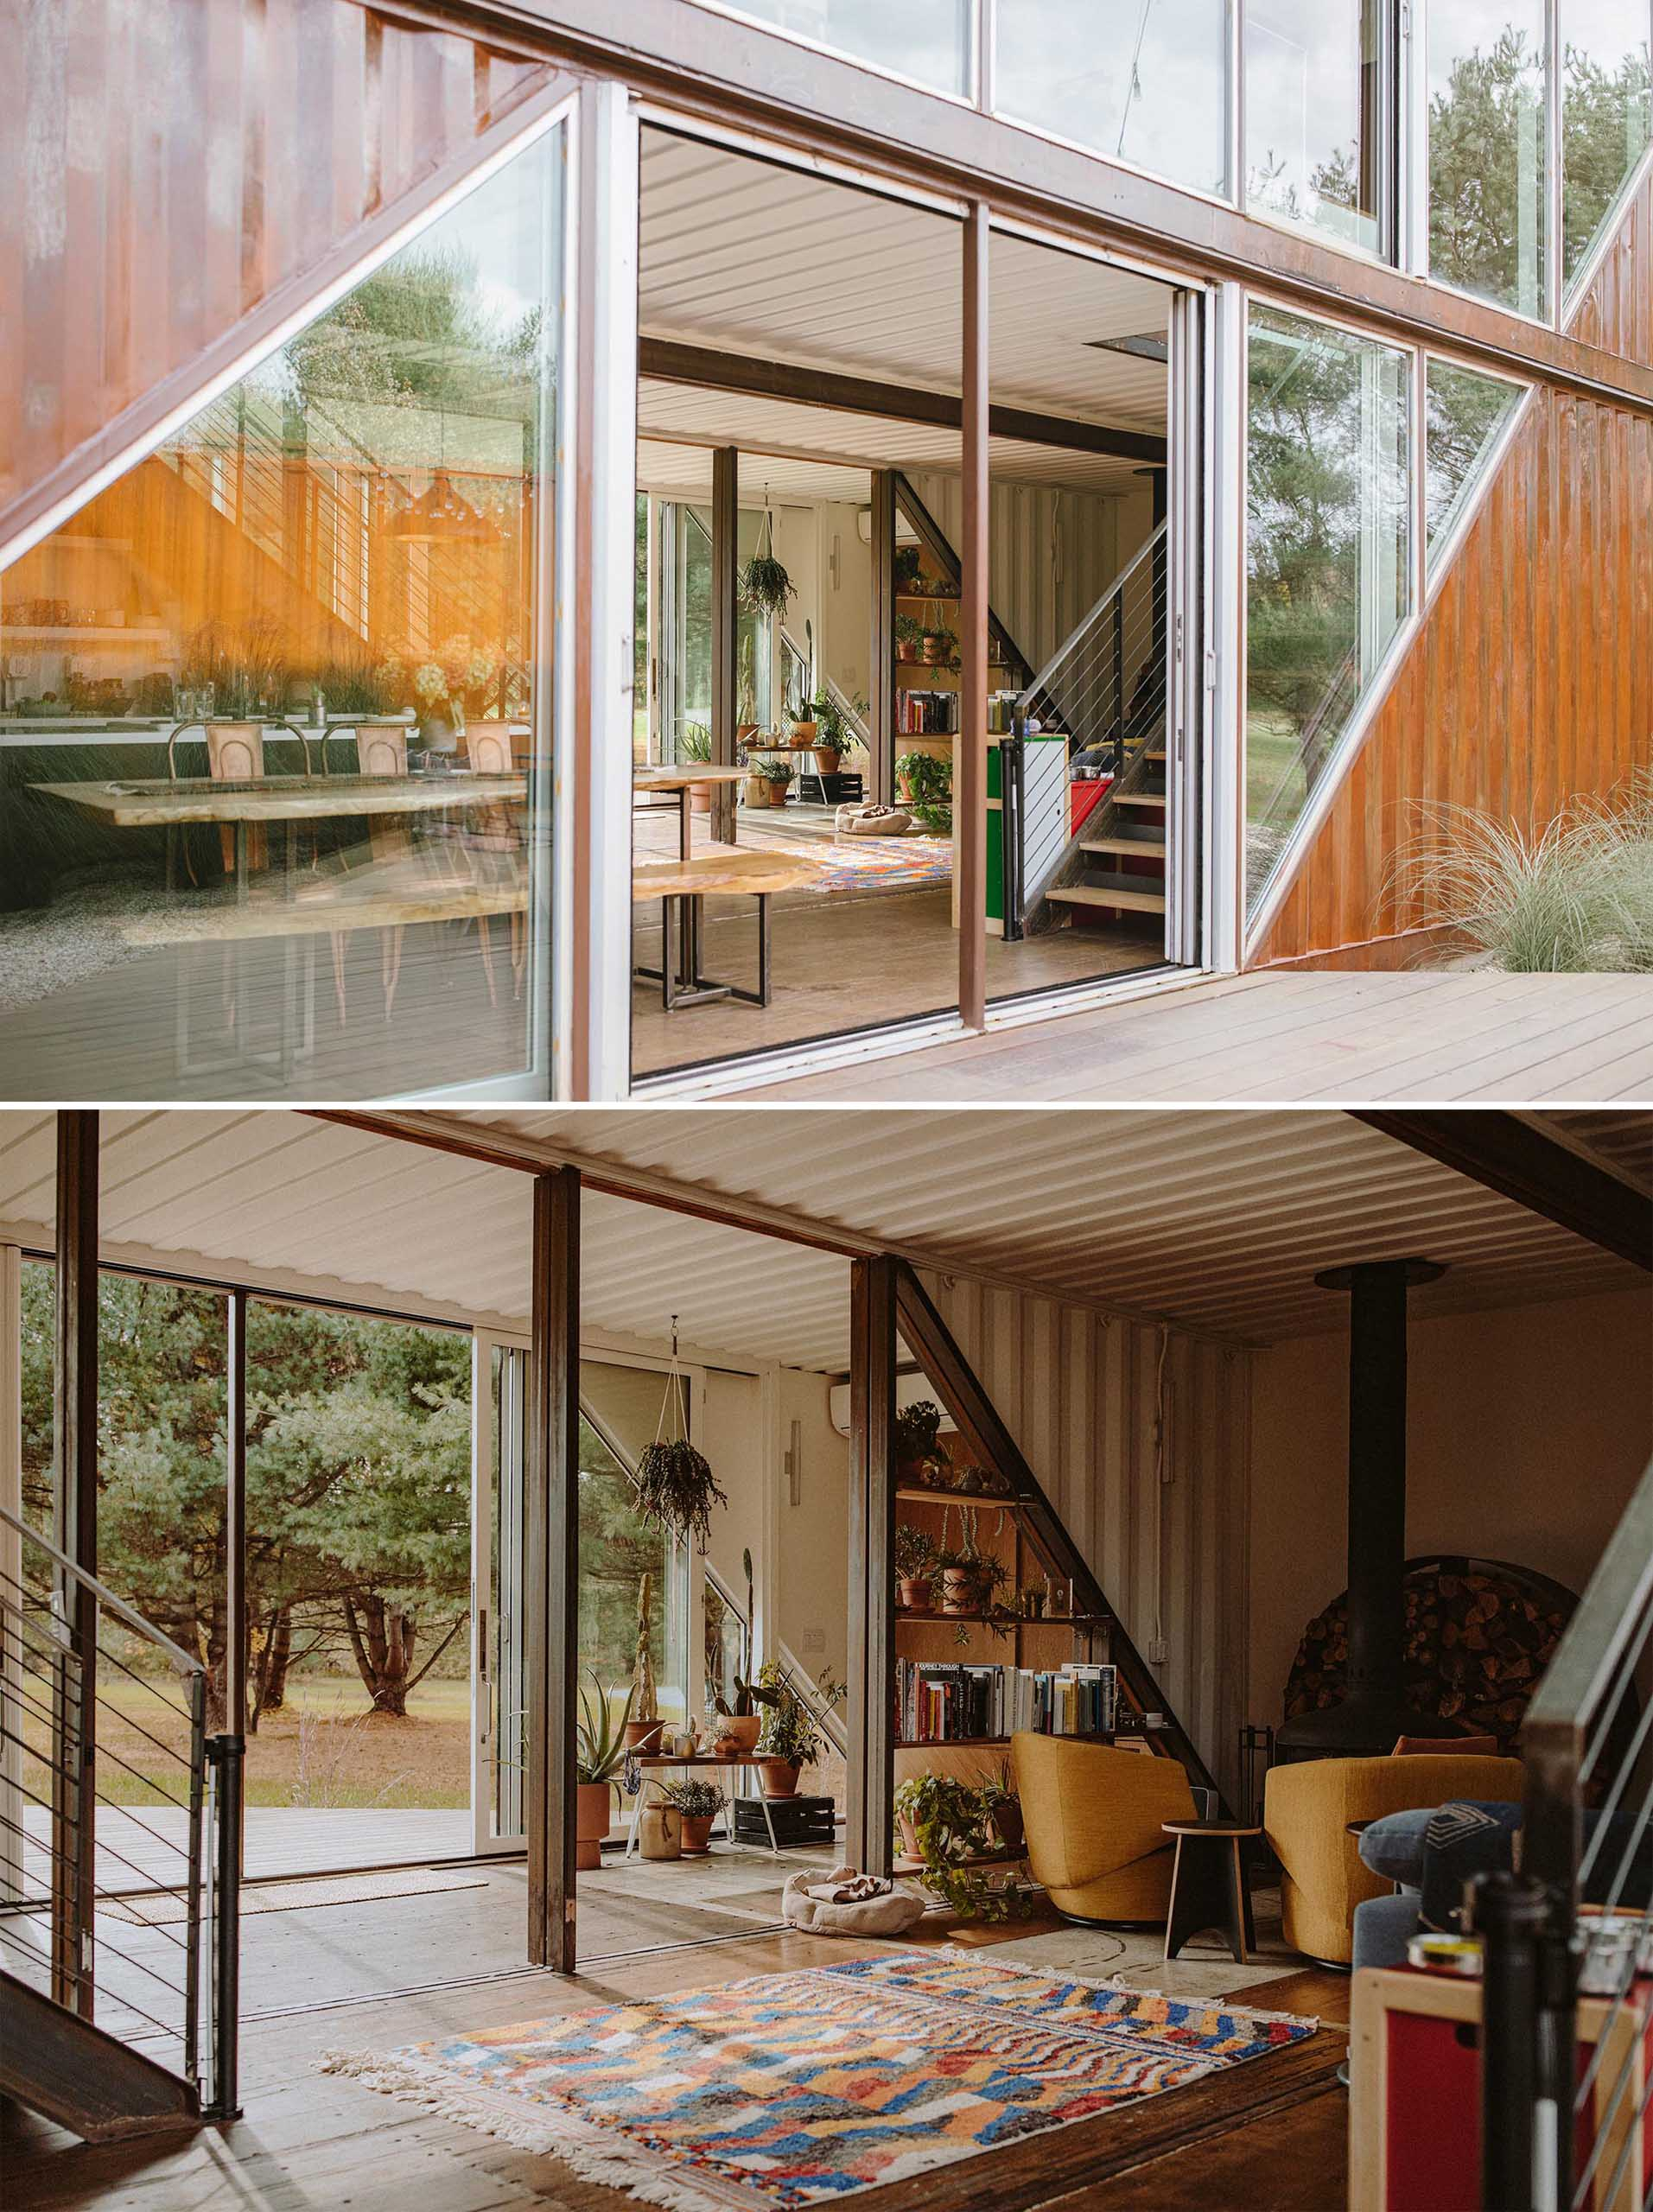 A modern shipping container home with two levels, outdoor decks, and glass walls.